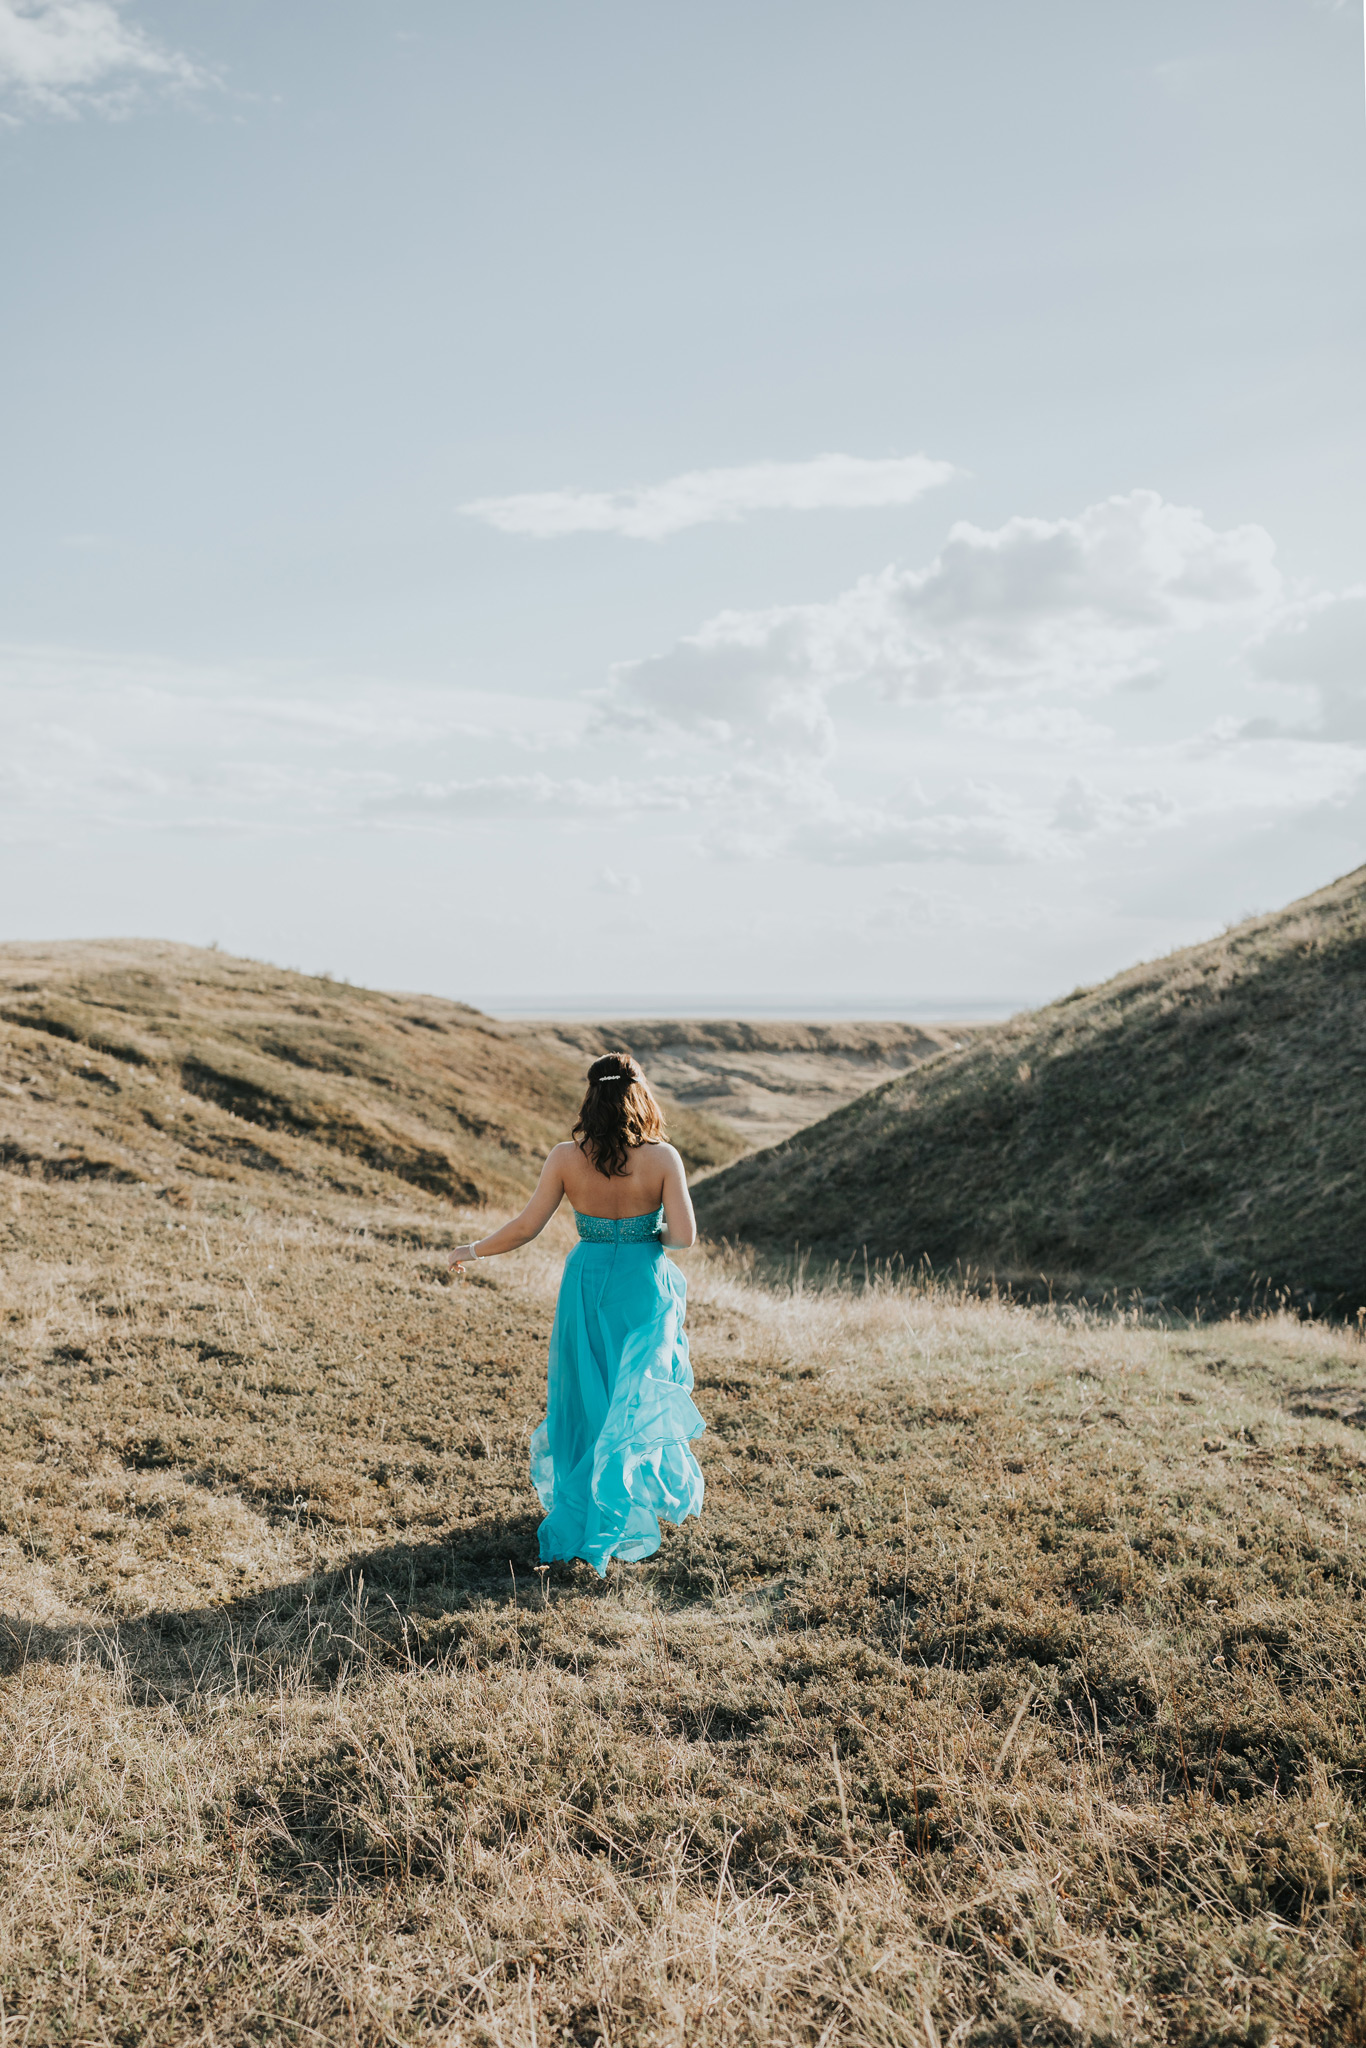 girl in grad dress running out into landscape coulee